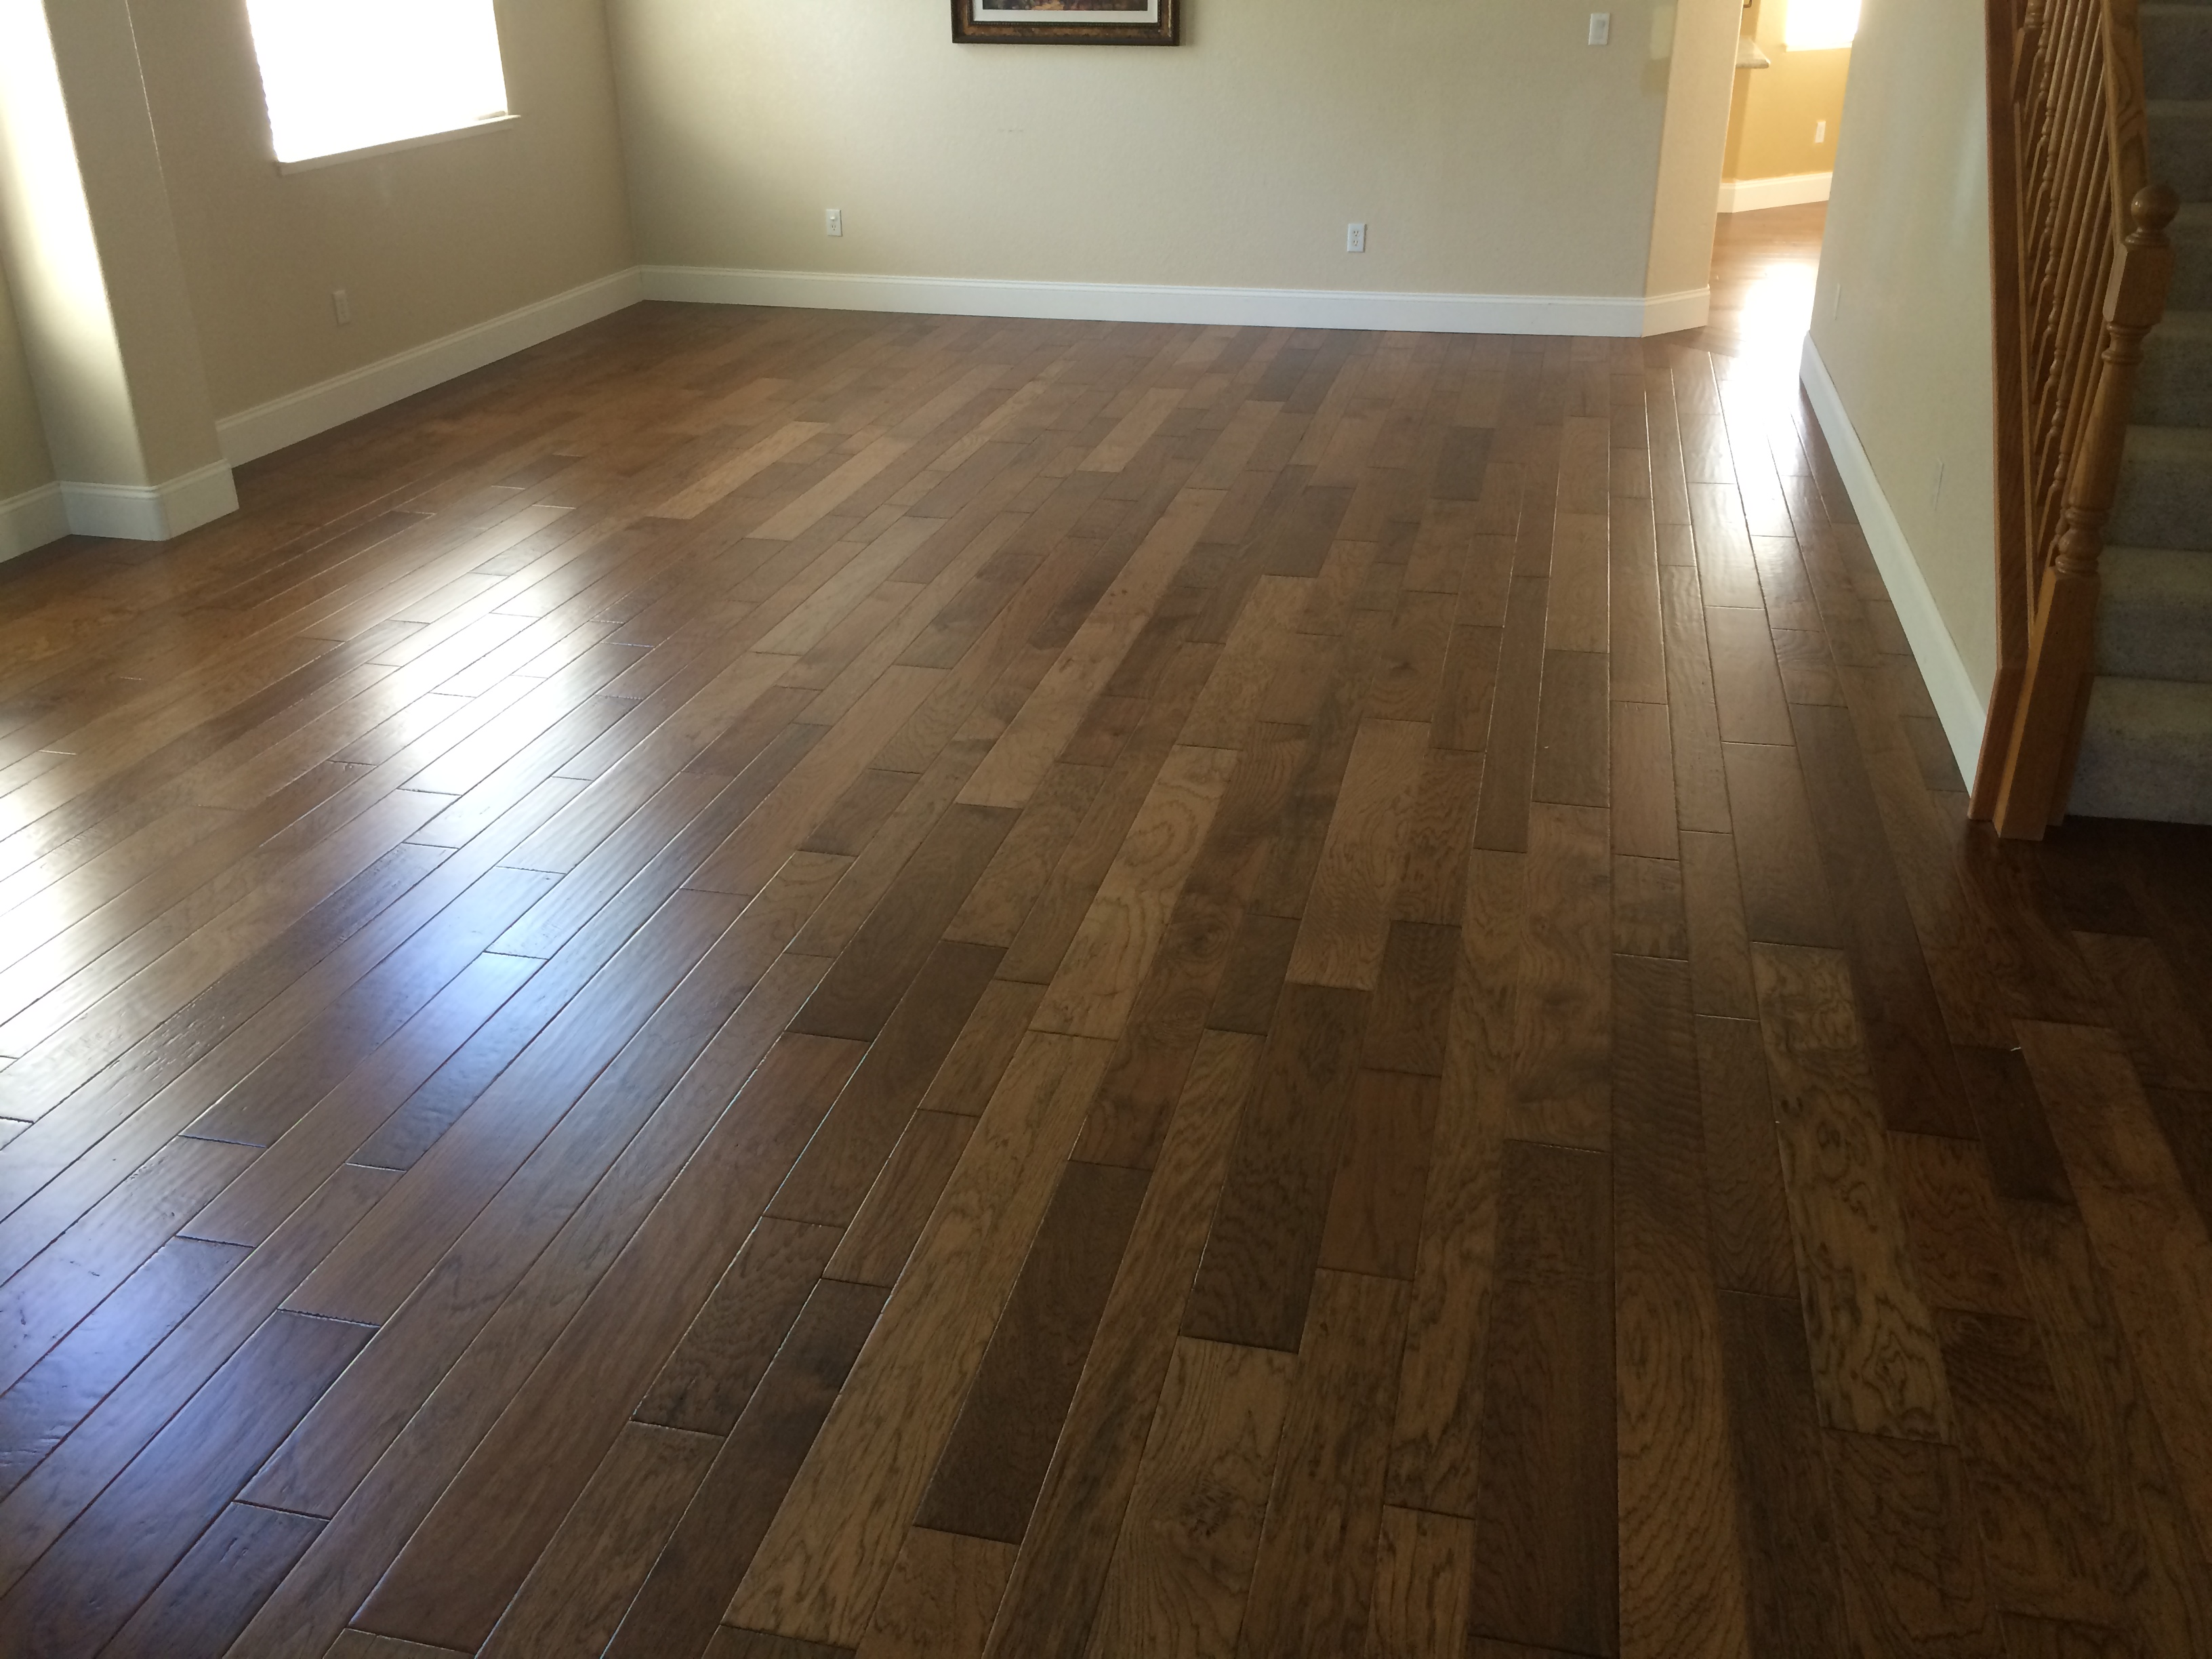 How moisture affects your hardwood floors part 1 avi s for Hardwood floors humidity